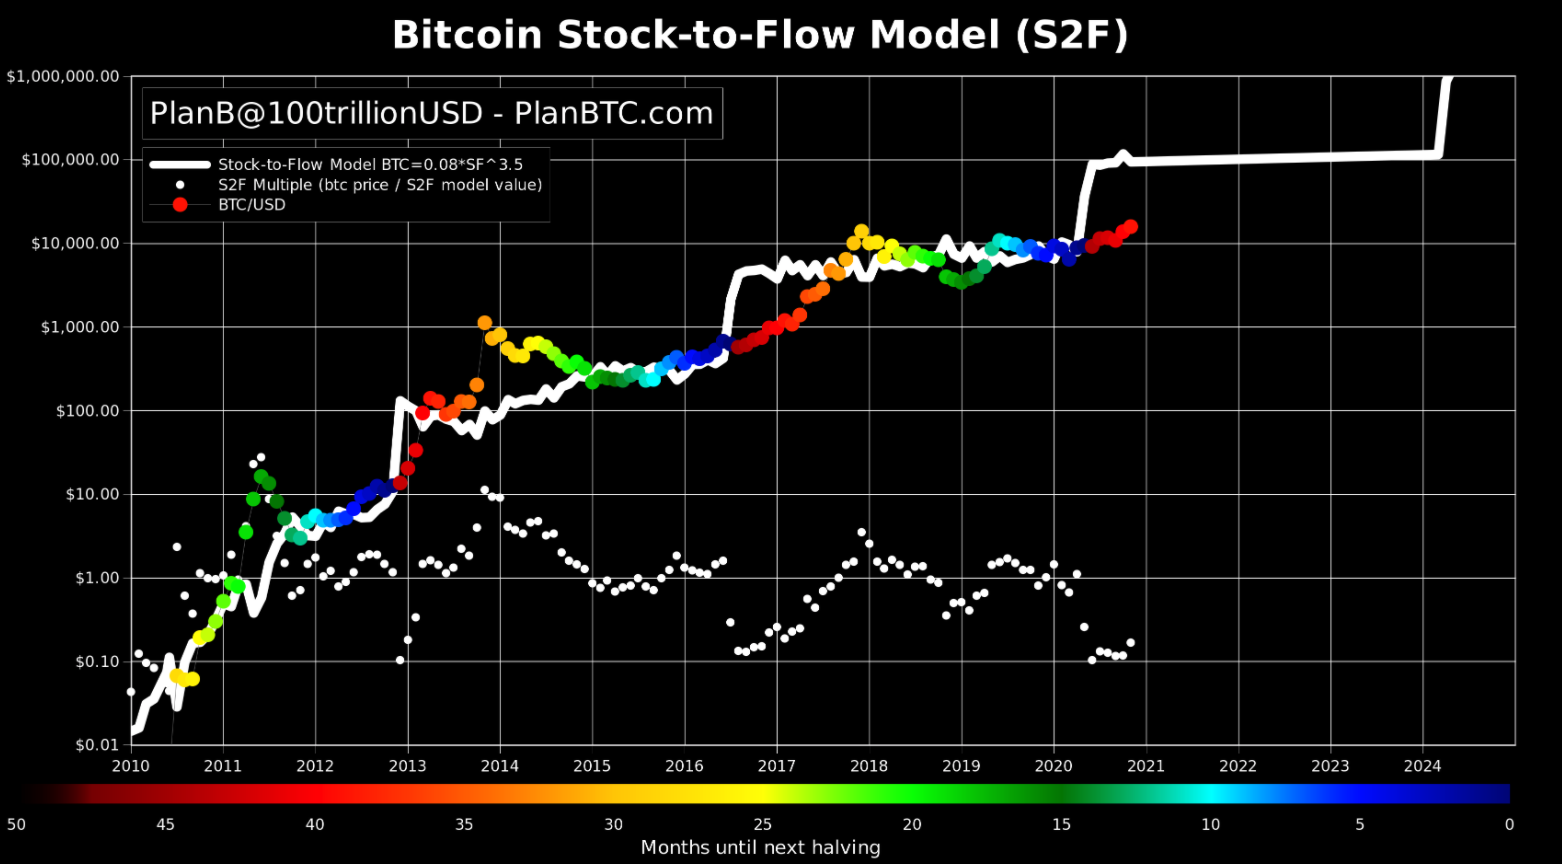 A chart plotting bitcoin price alongside it's stock-to-flow ratio